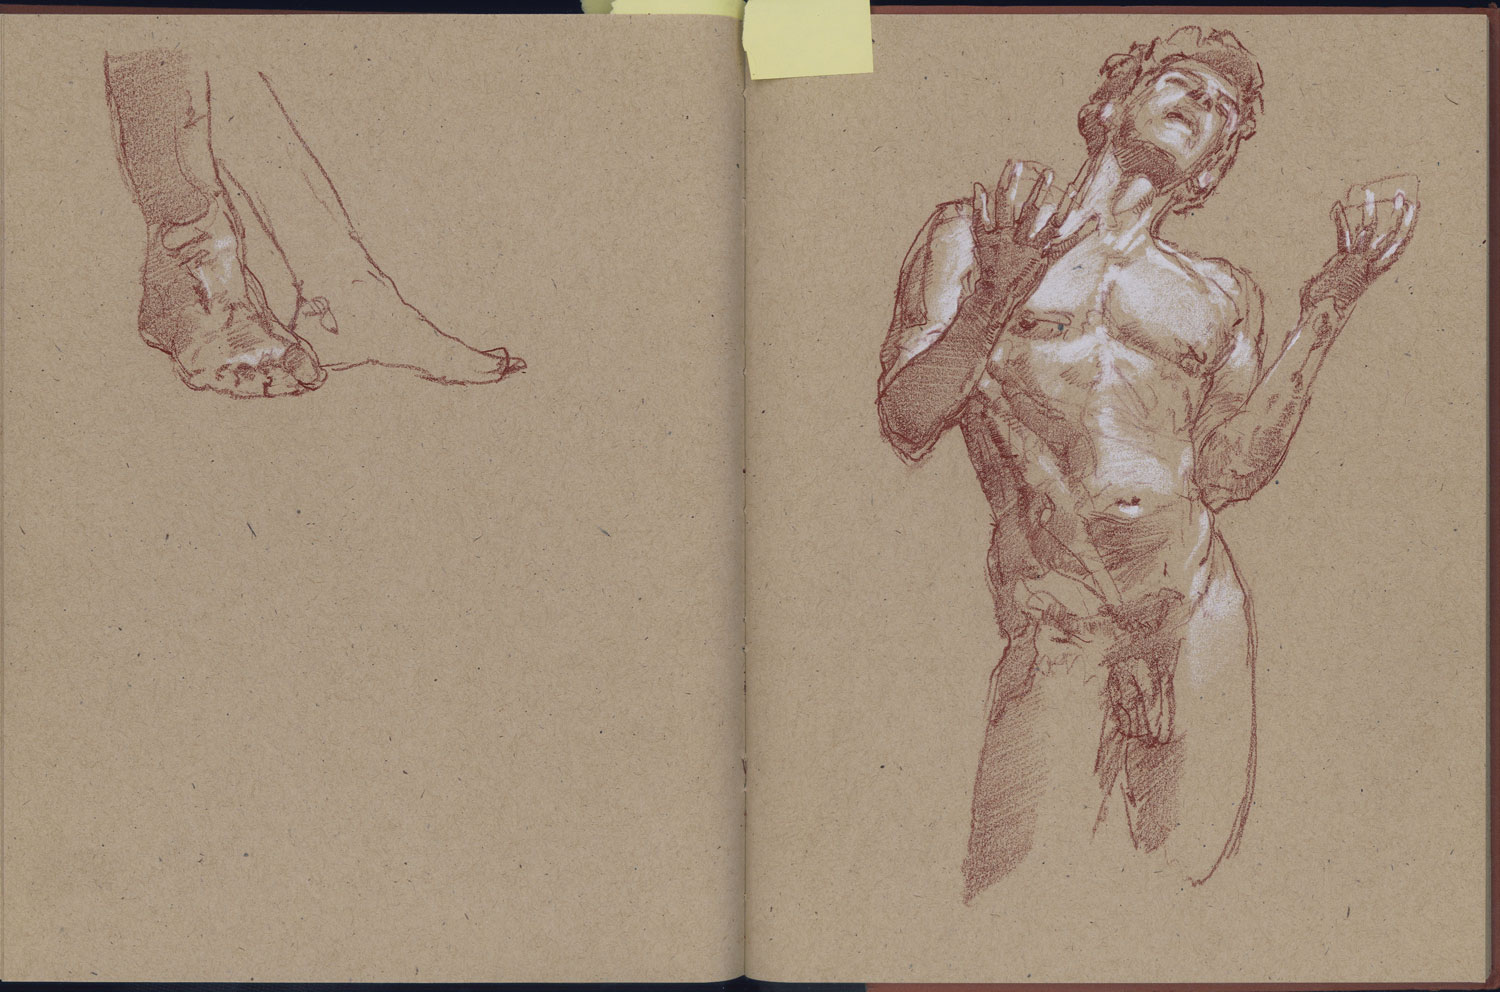 Life drawing session held by the London Atelier of